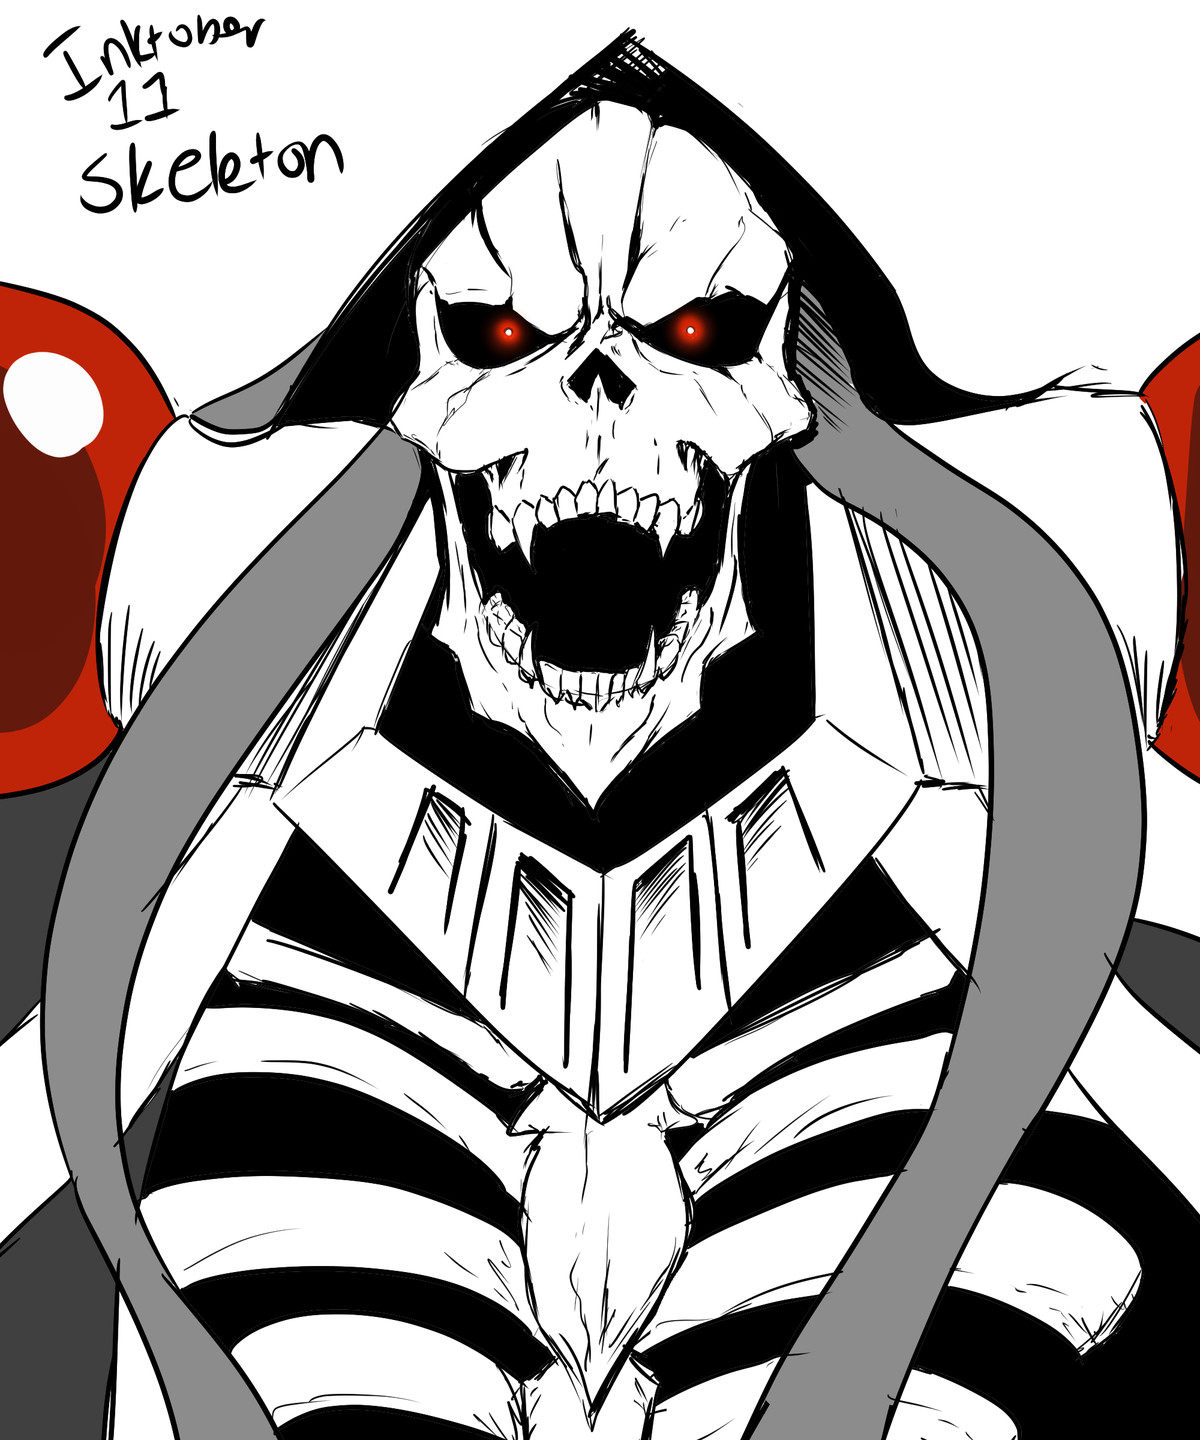 Inktober 11: Skeleton. join list: GBArt (261 subs)Mention History Why does it feel like I'm the only one still doing inktober, or did everyone just skip th